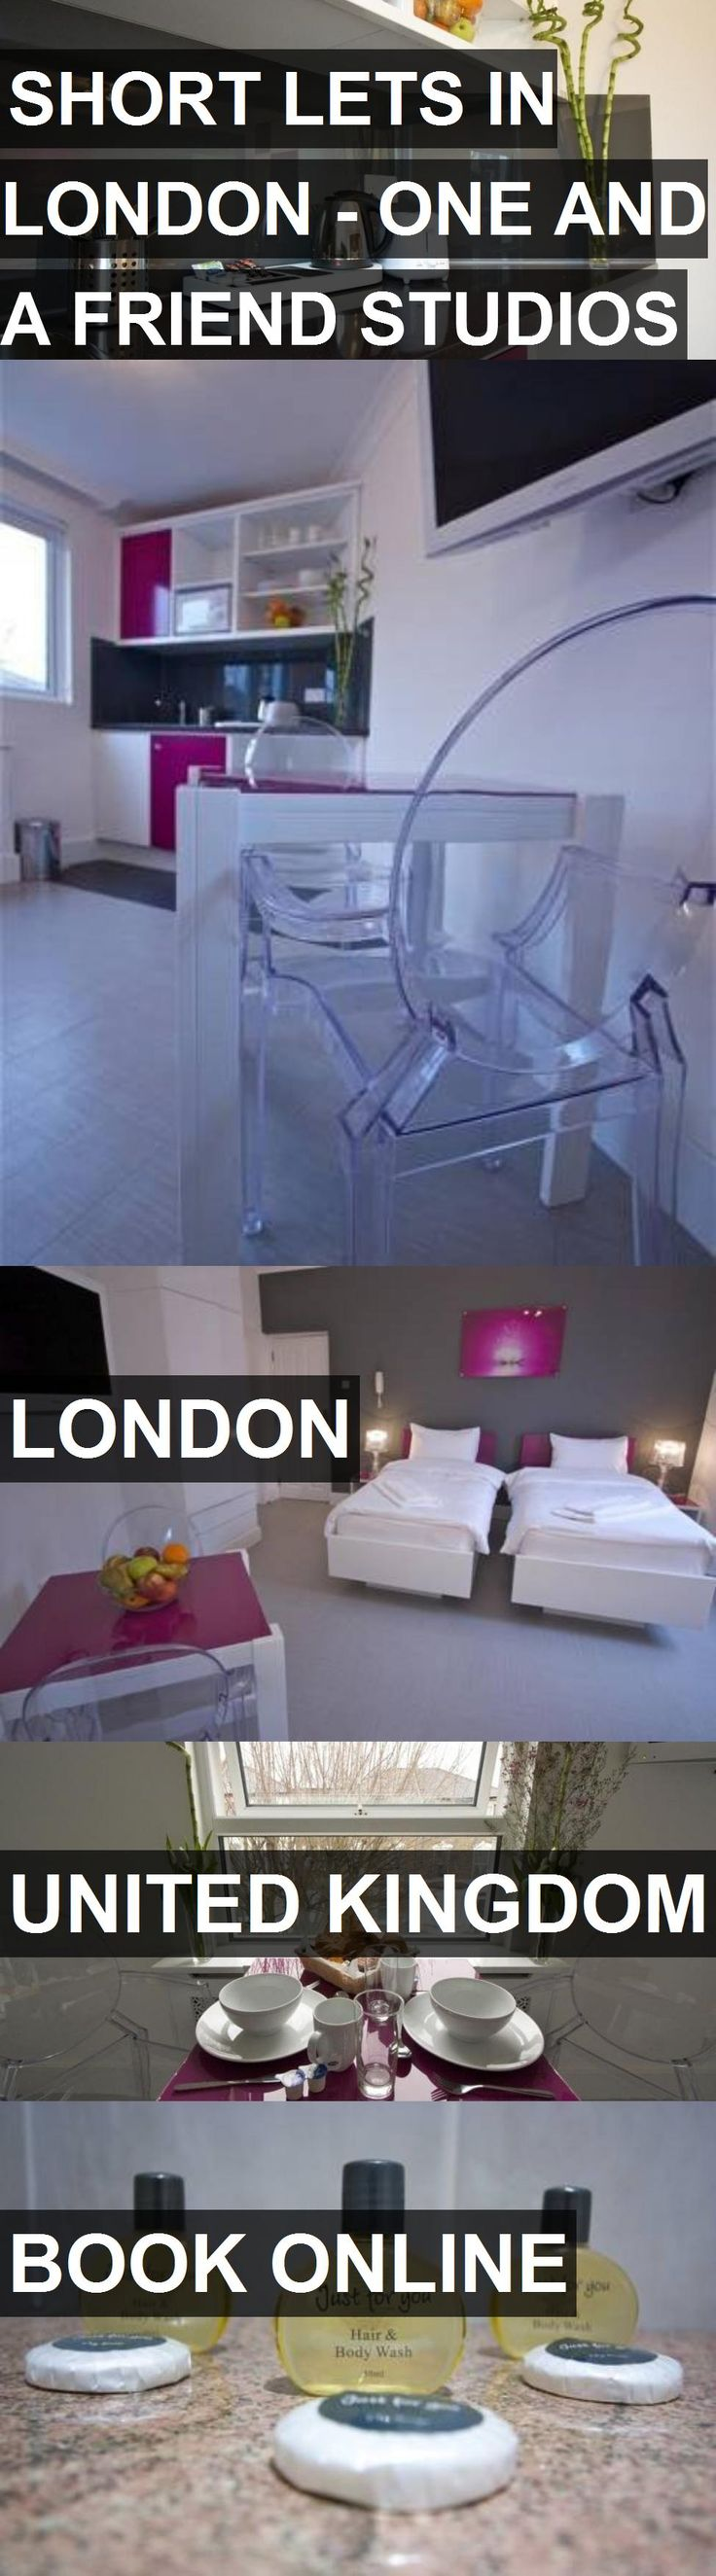 Hotel SHORT LETS IN LONDON - ONE AND A FRIEND STUDIOS in London, United Kingdom. For more information, photos, reviews and best prices please follow the link. #UnitedKingdom #London #travel #vacation #hotel